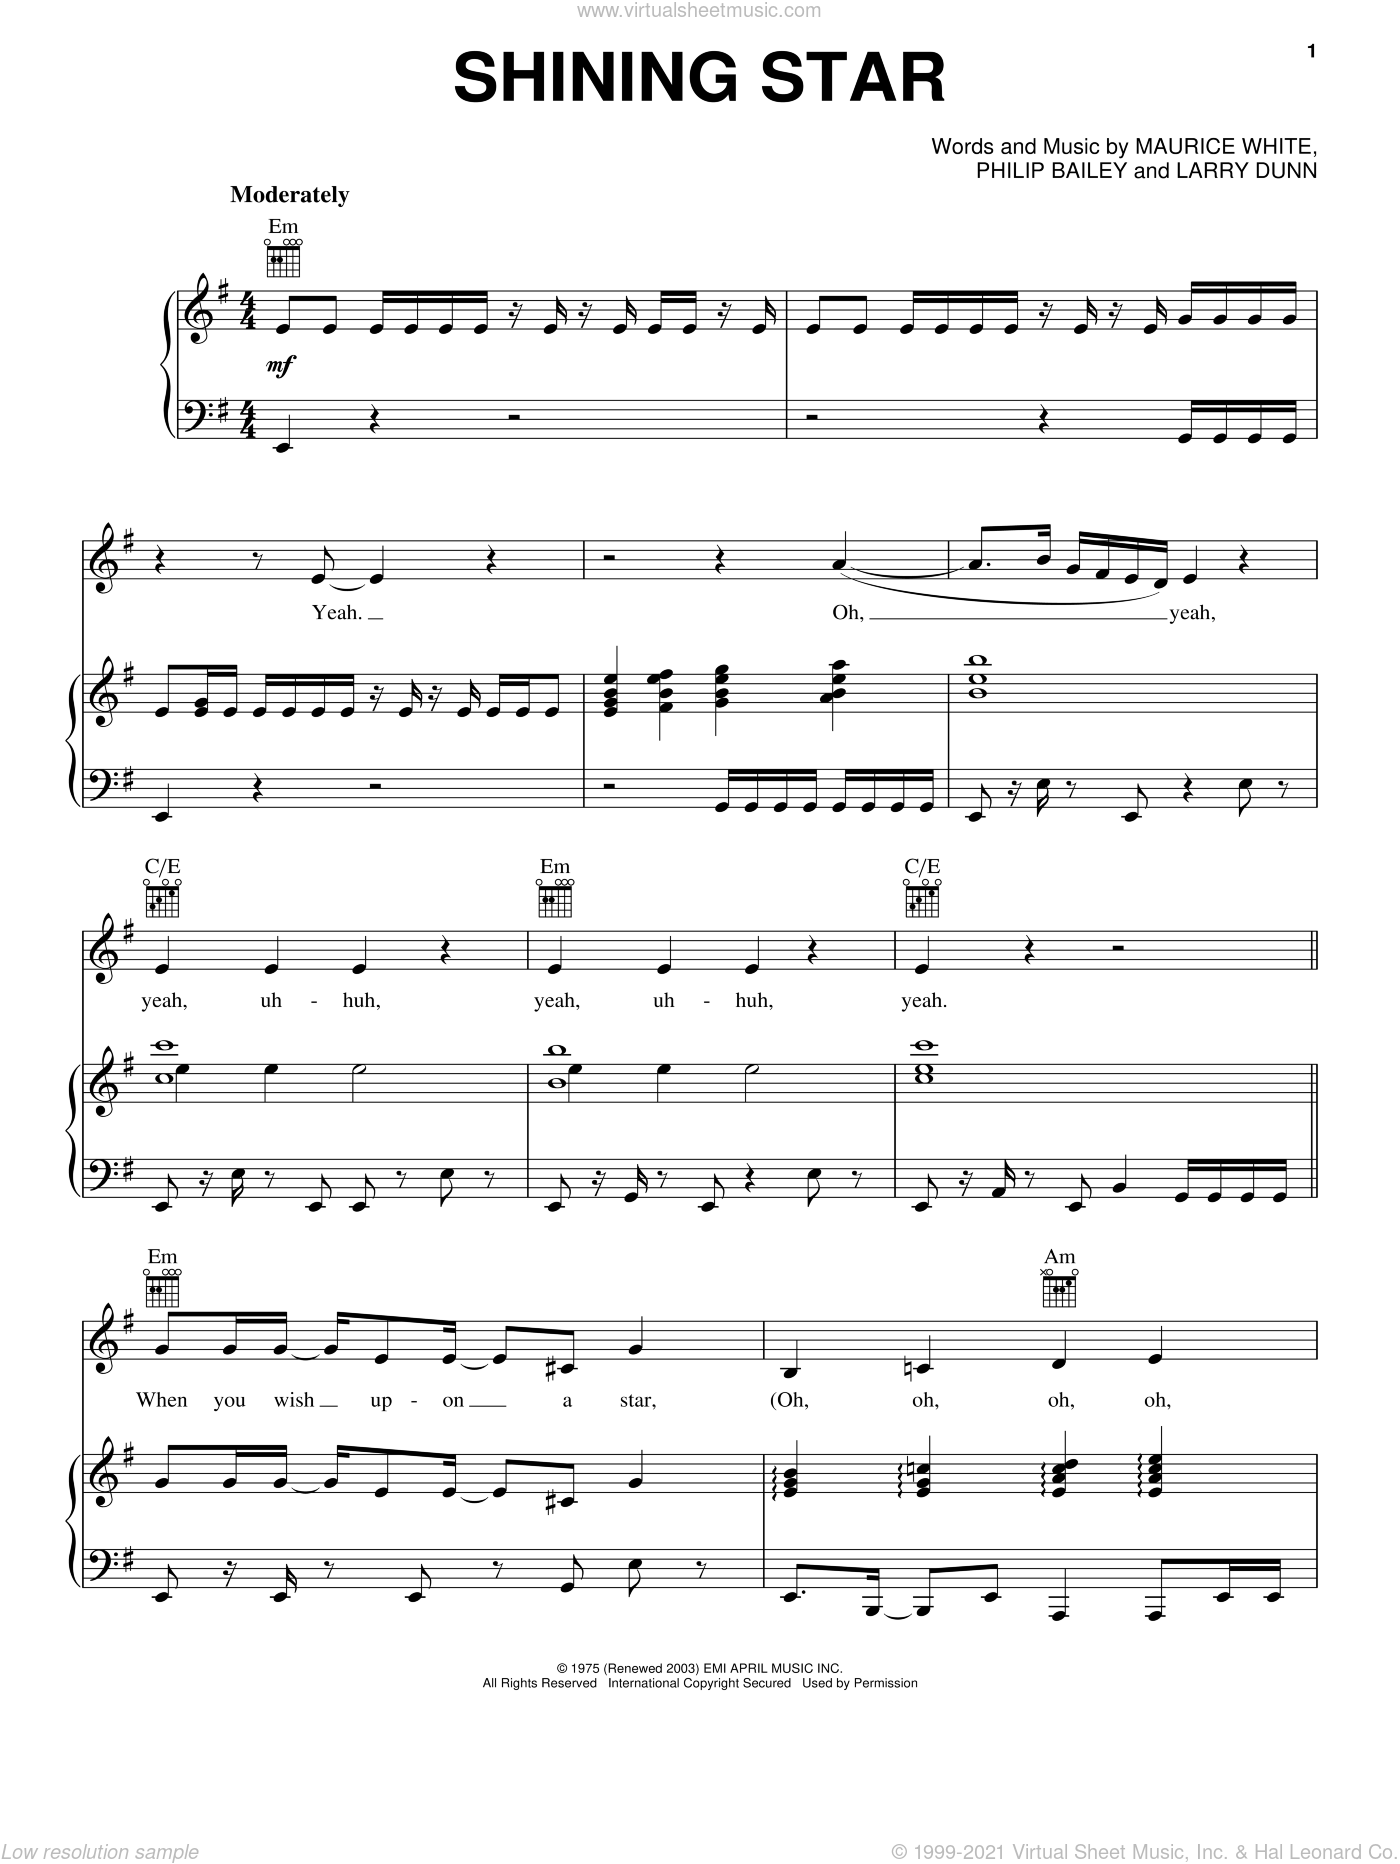 Shining Star sheet music for voice, piano or guitar by Earth, Wind & Fire, Yolanda Adams, Larry Dunn, Maurice White and Philip Bailey, intermediate skill level